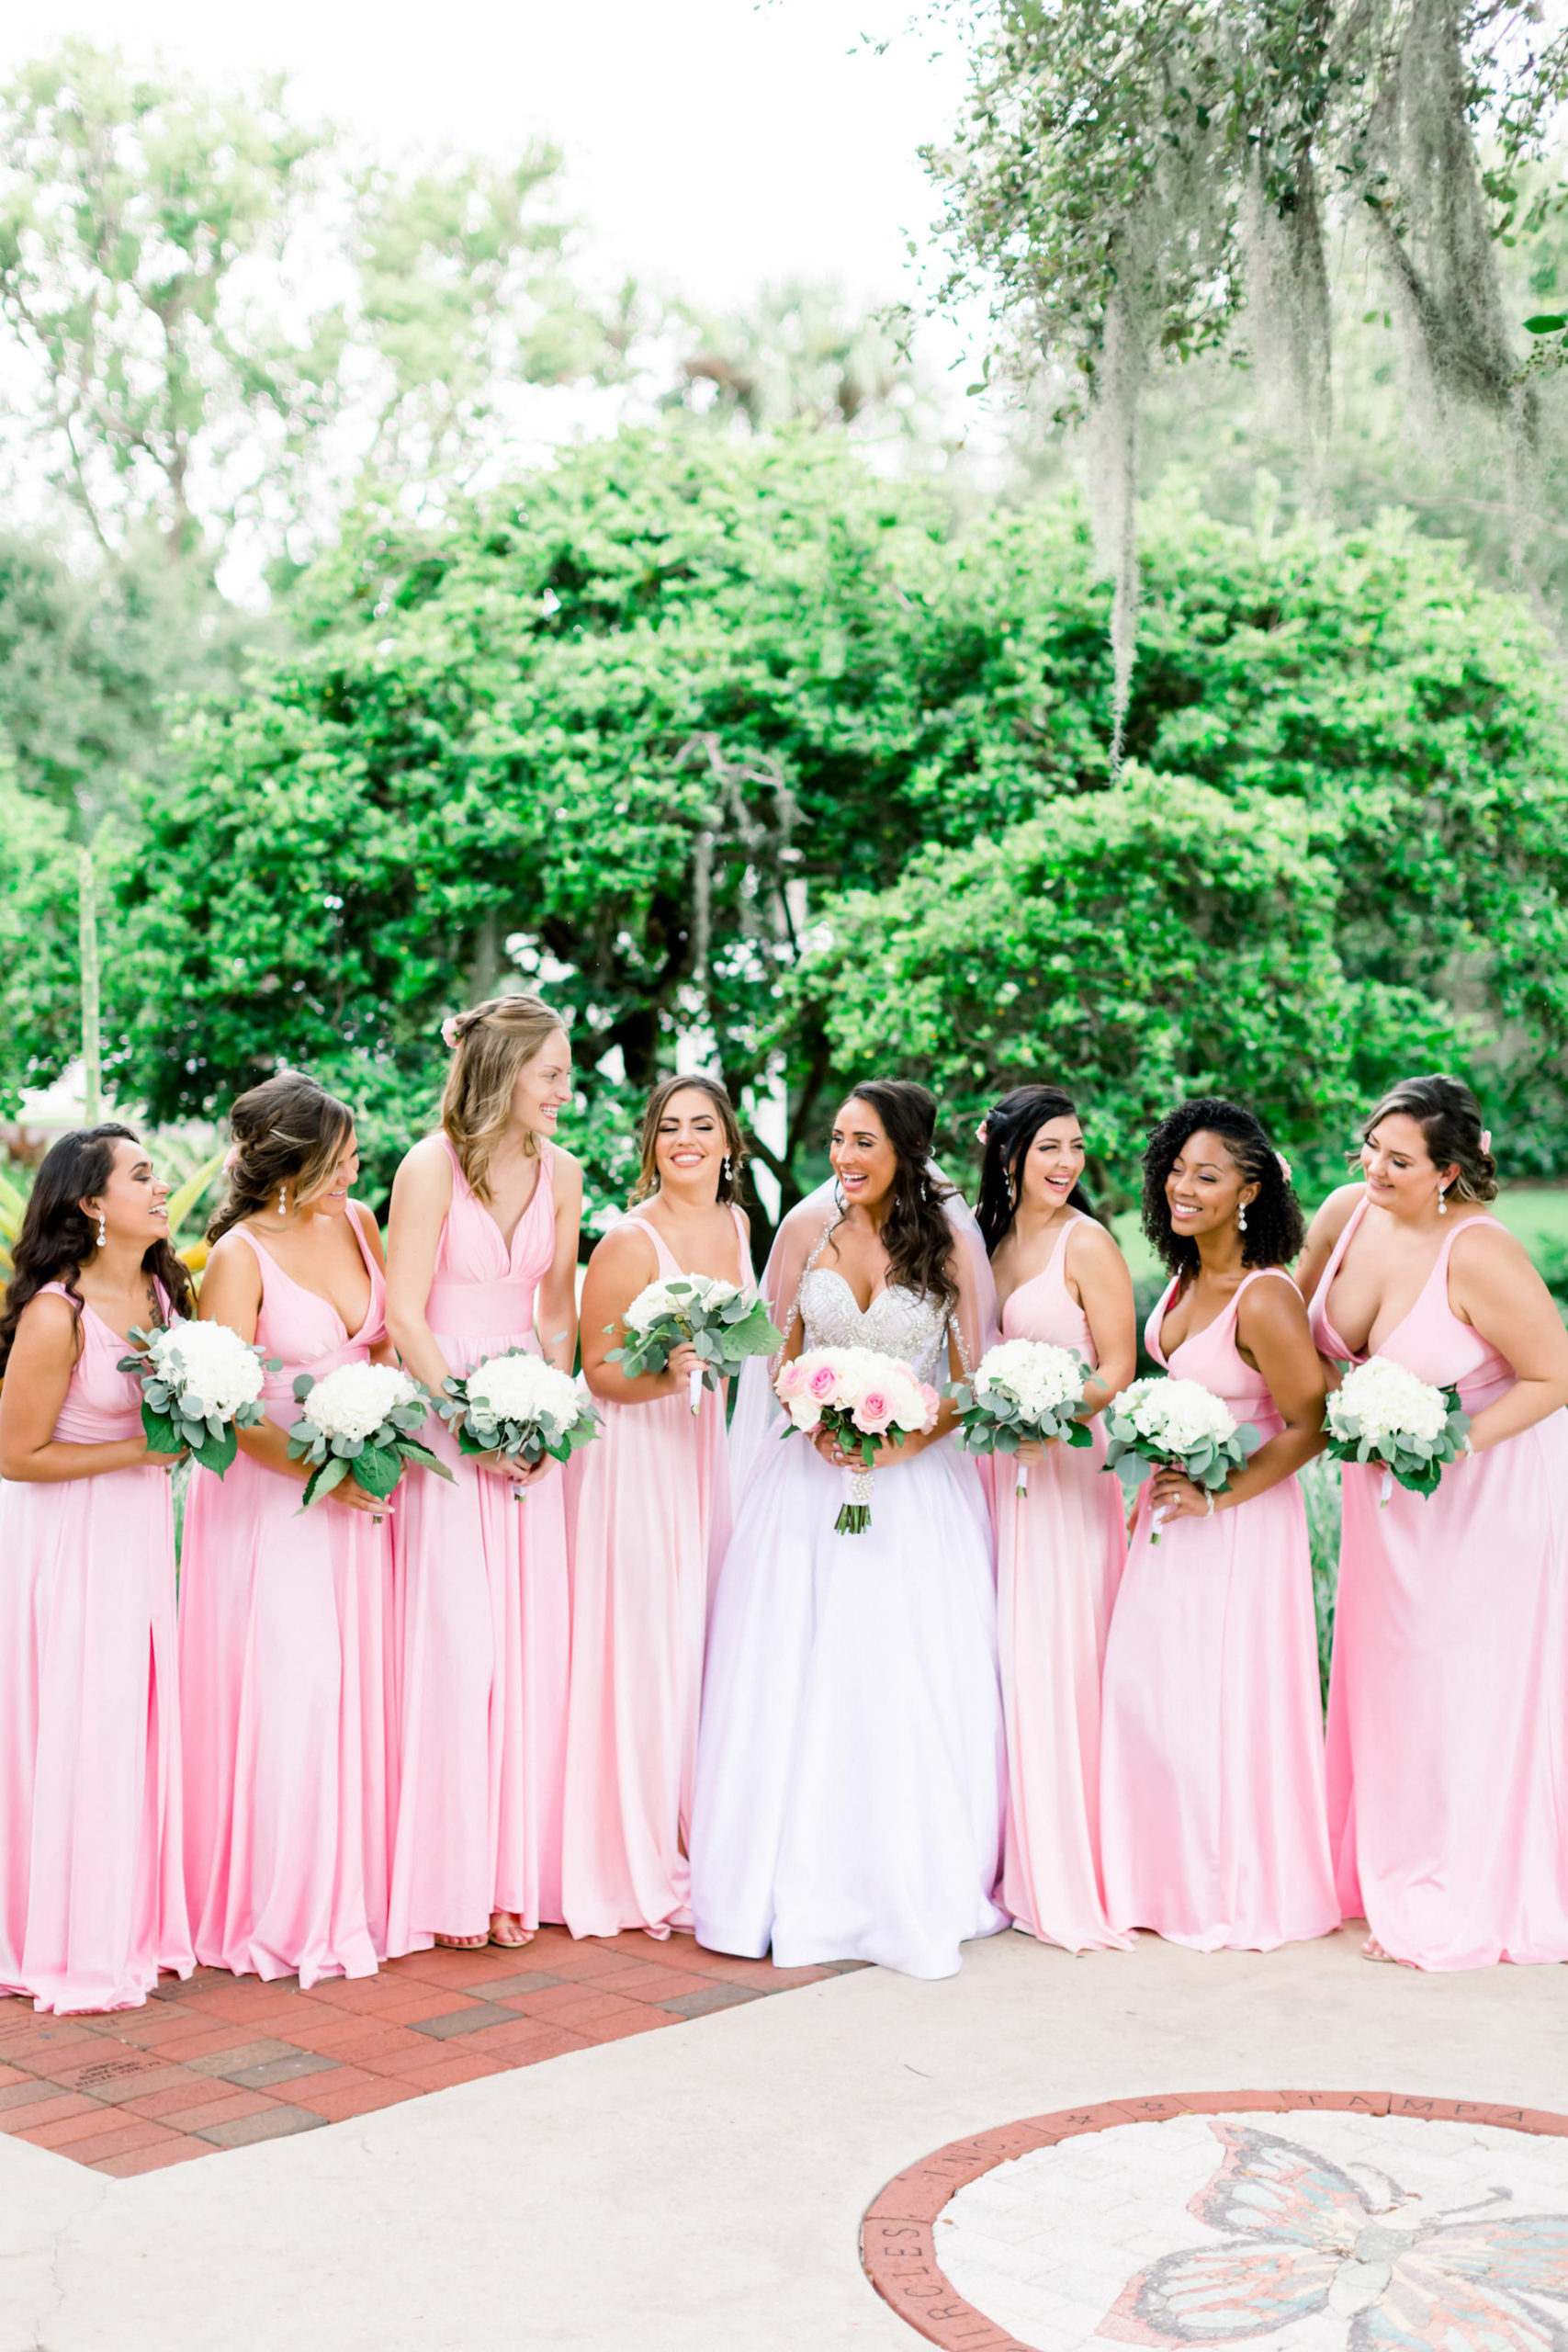 Florida Bride and Bridesmaids in Matching Pink Dresses Holding White and Pink Rose Floral Bouquets | Tampa Wedding Photographer Shauna and Jordon Photography | Wedding Dress Truly Forever Bridal